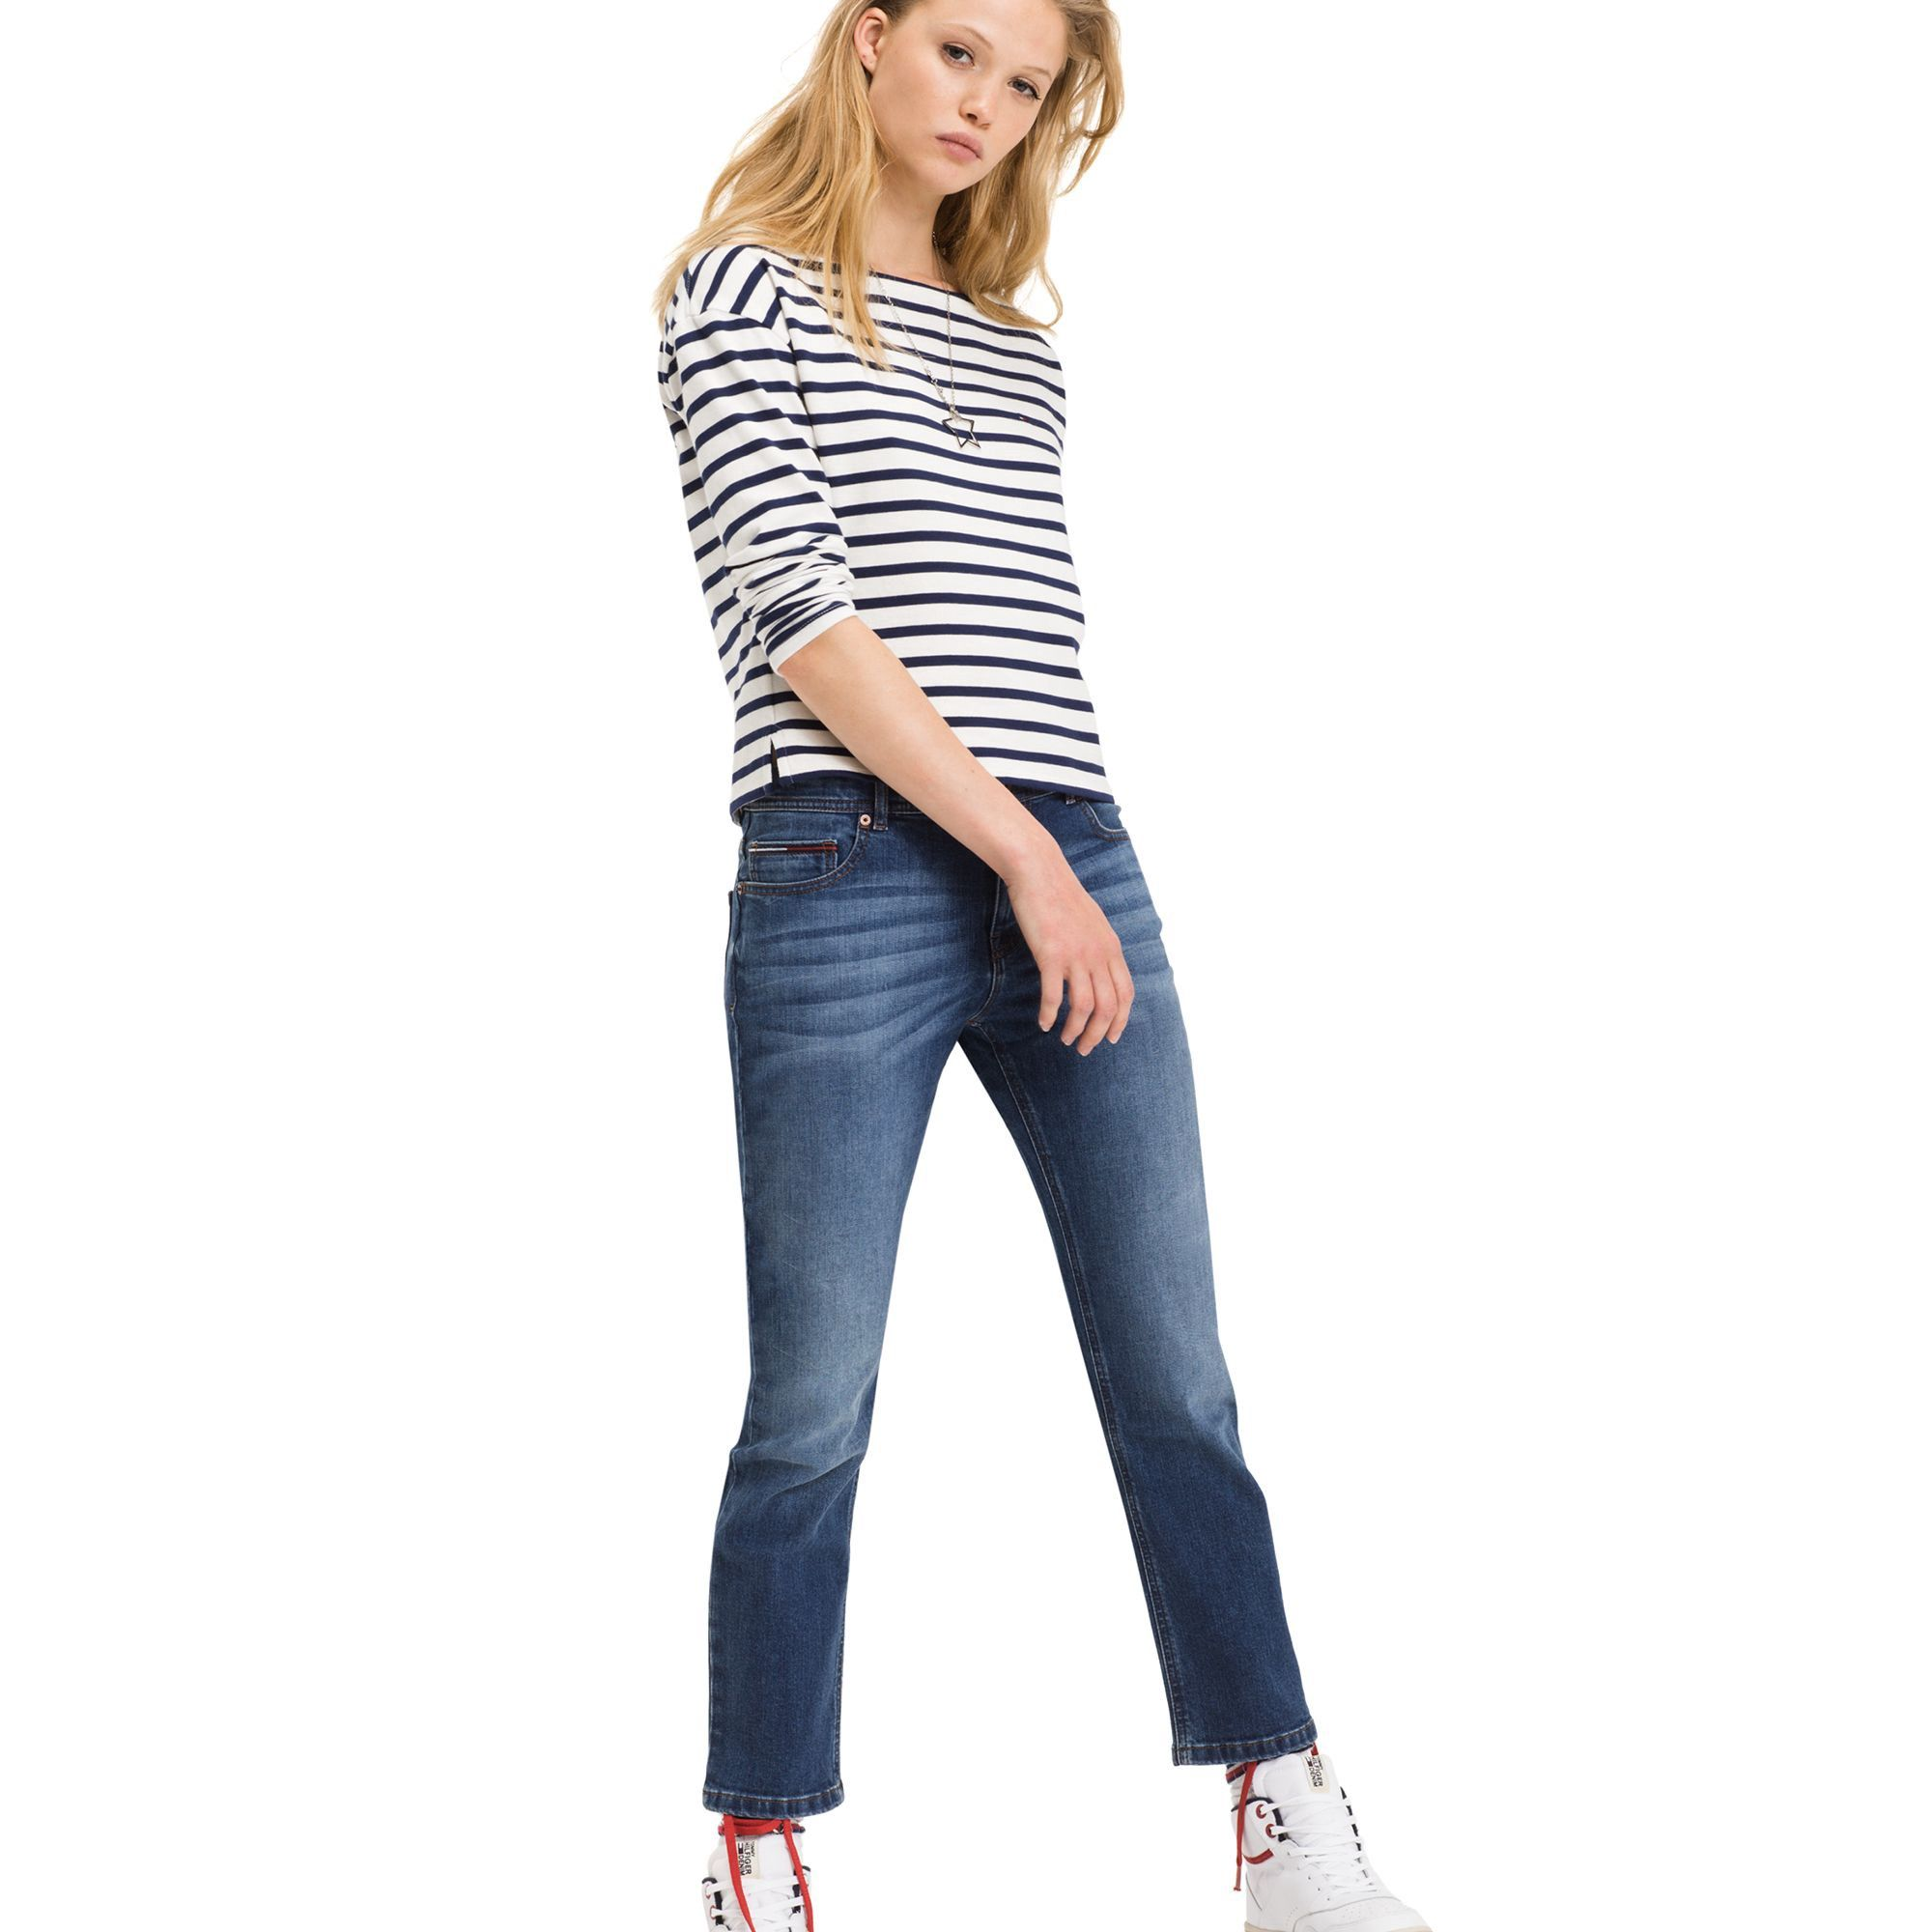 TOMMY HILFIGER STRAIGHT FIT CROPPED JEAN - WARM MID BLUE COMFORT. #tommyhilfiger #cloth #